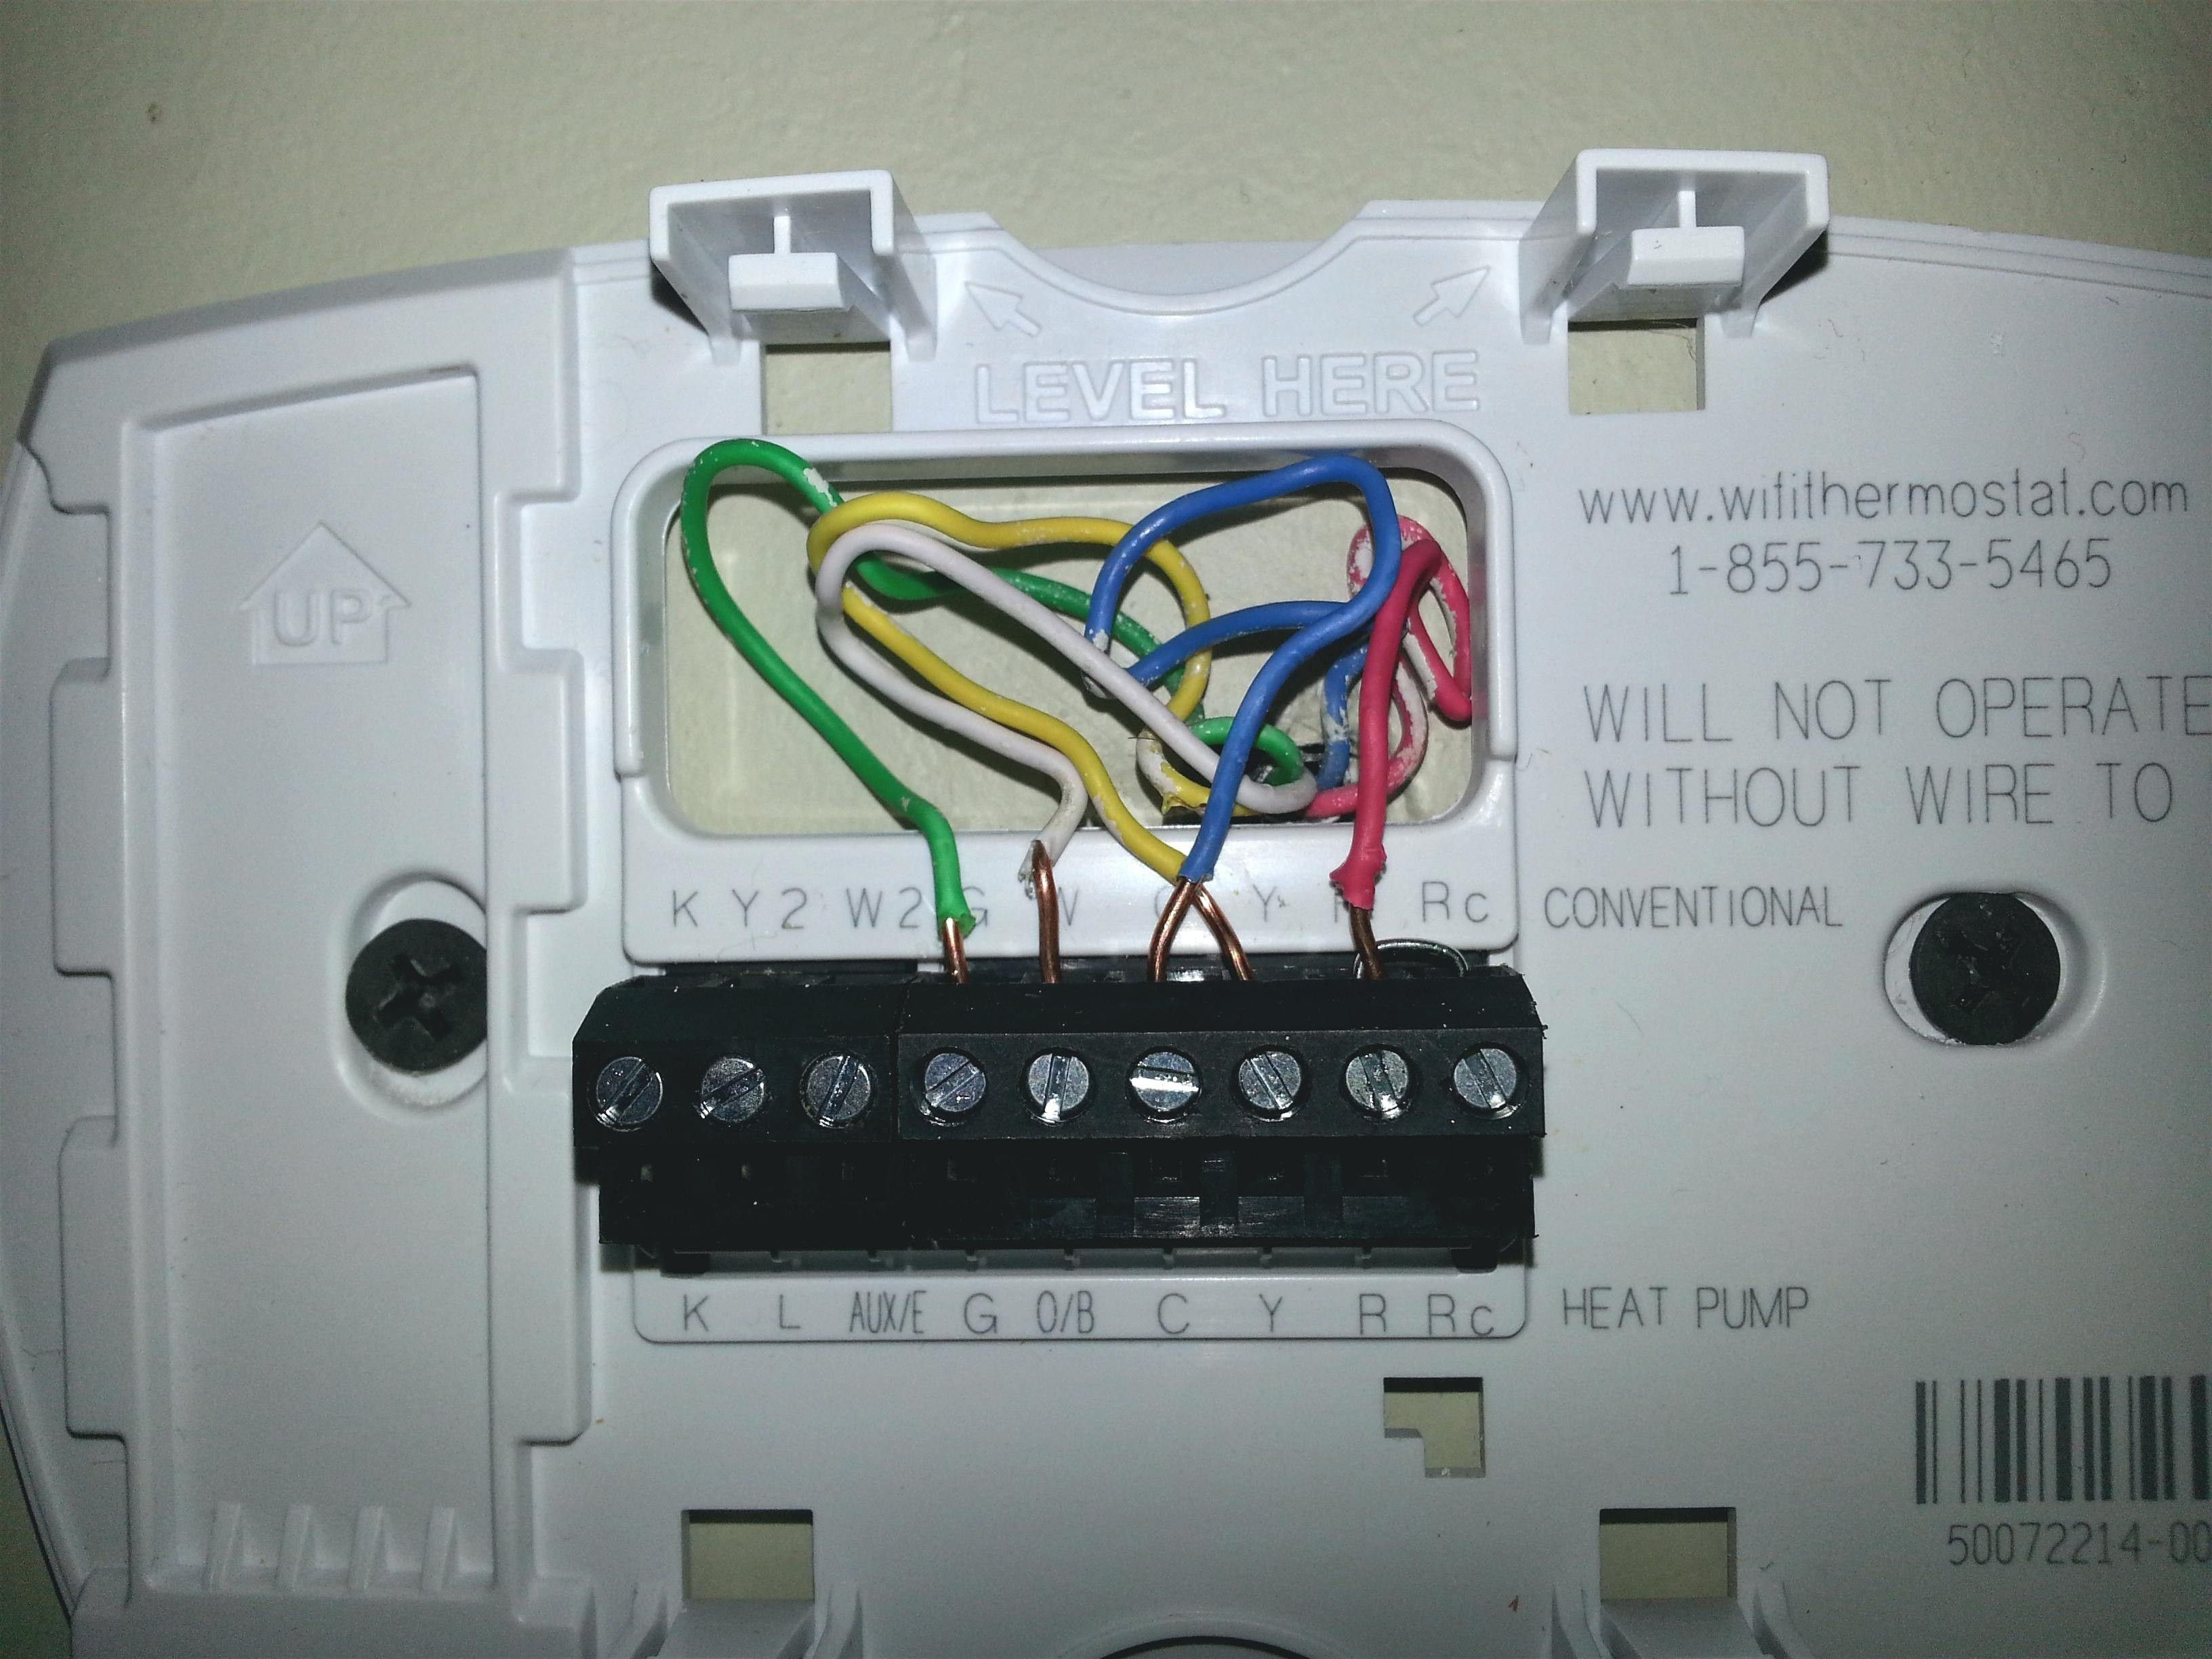 Unique Honeywell Baseboard Heater Thermostat Wiring Diagram Diagram Diagramtemplate Diagra Honeywell Thermostats Thermostat Wiring Honeywell Wifi Thermostat